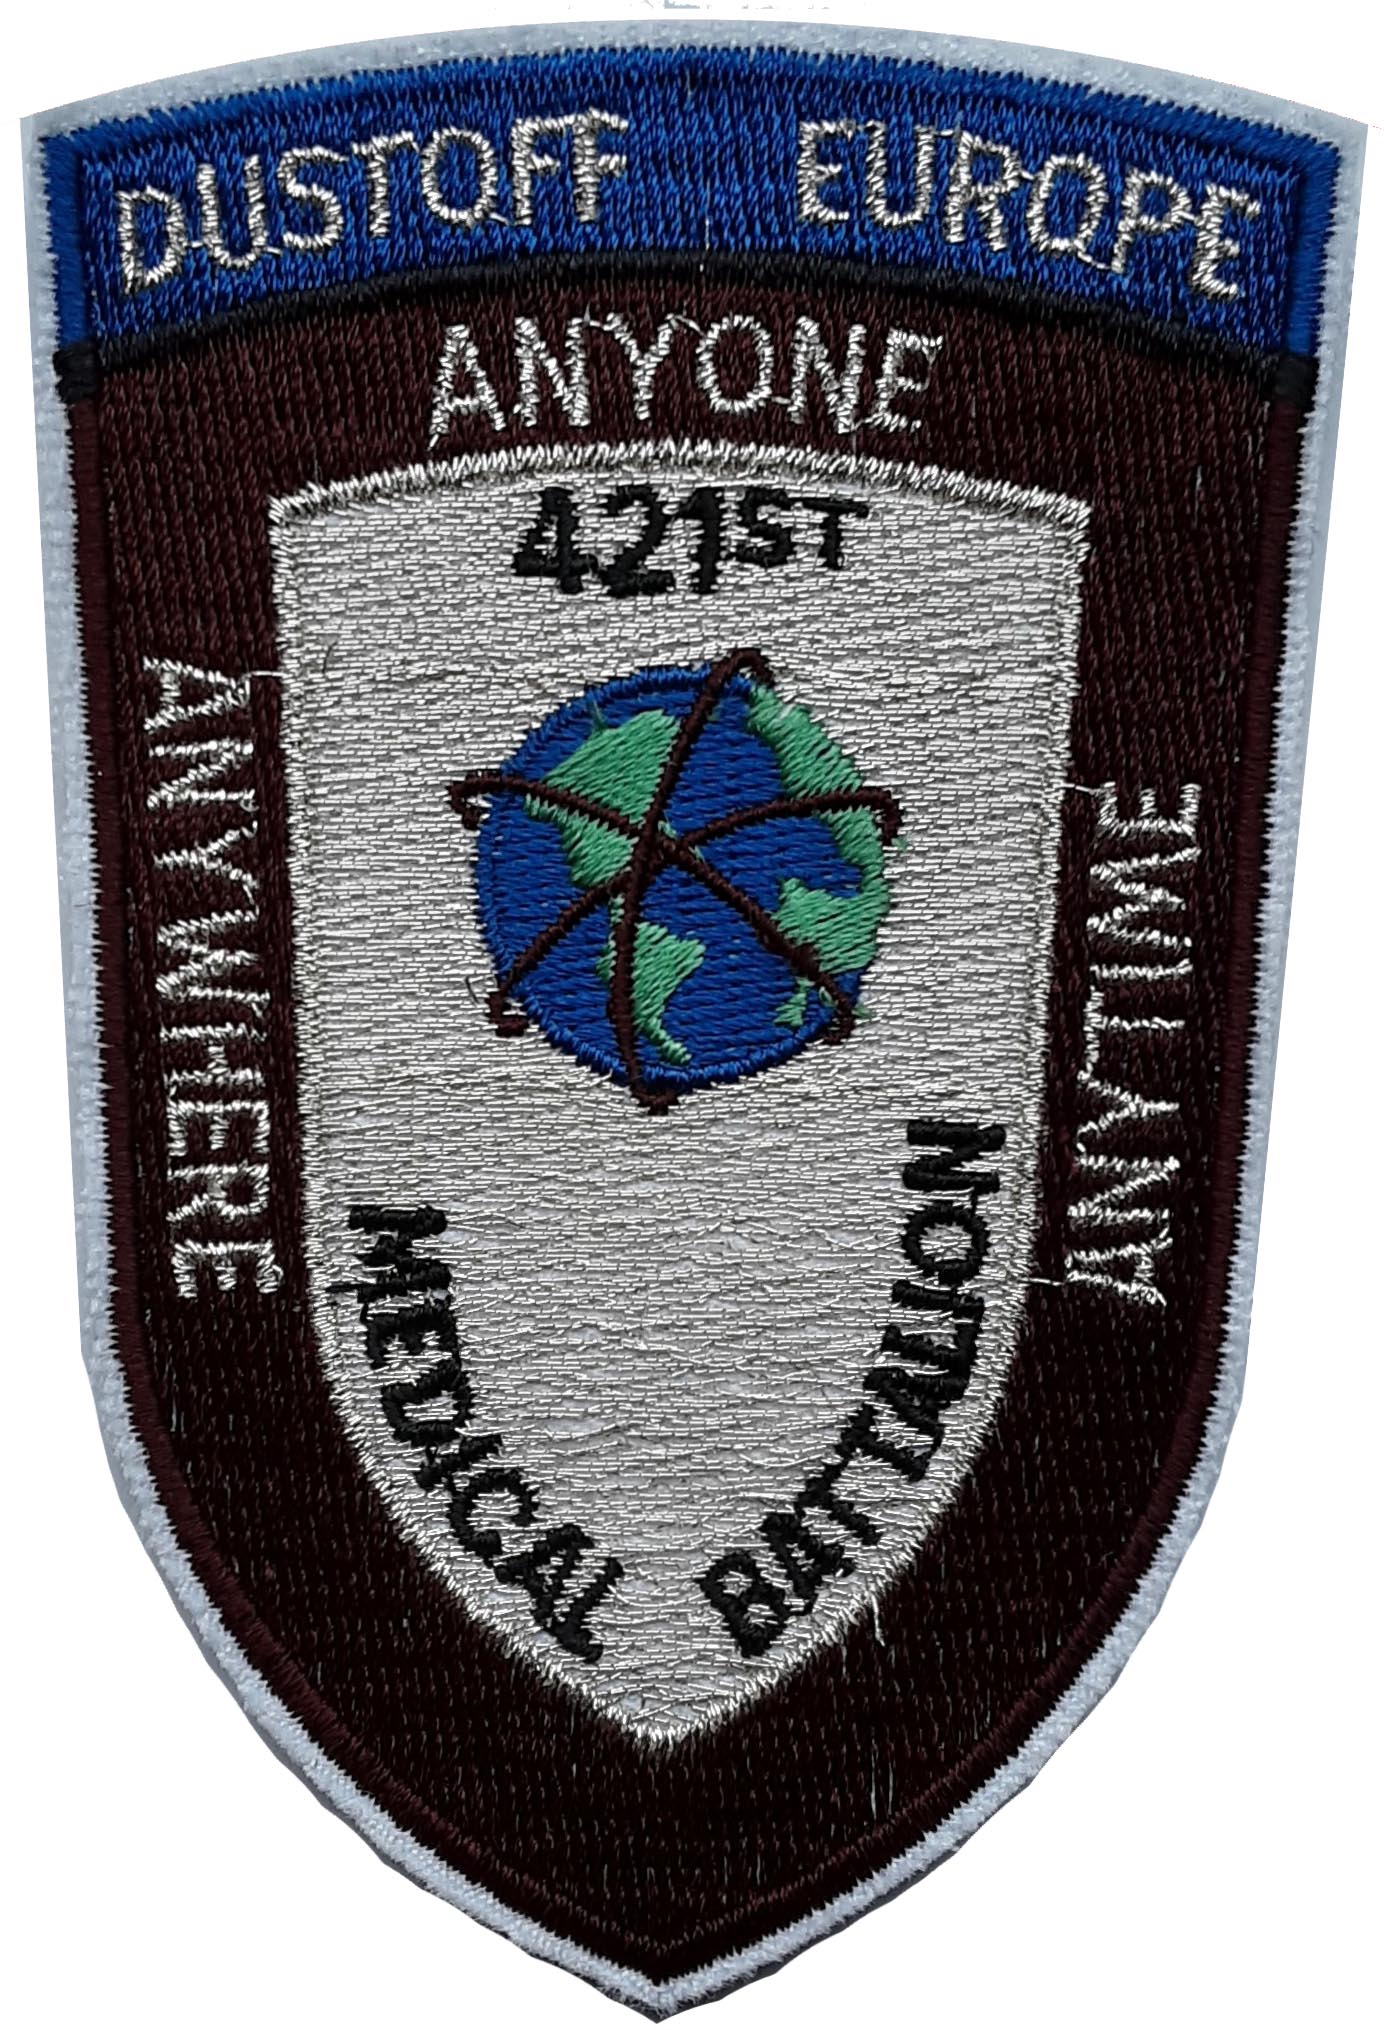 421st Medical Battalion